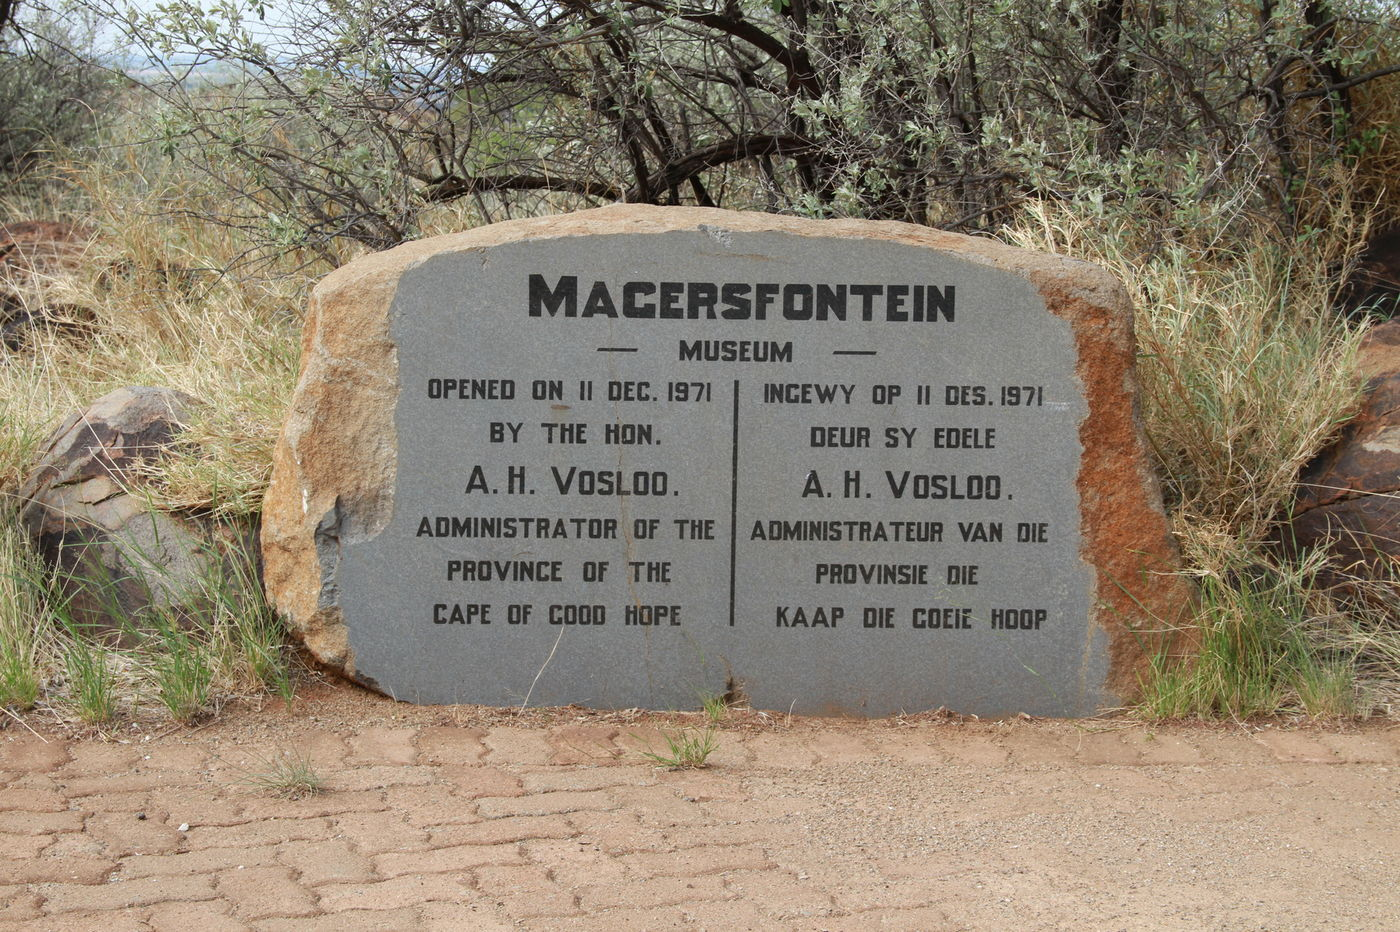 Magersfontein museum